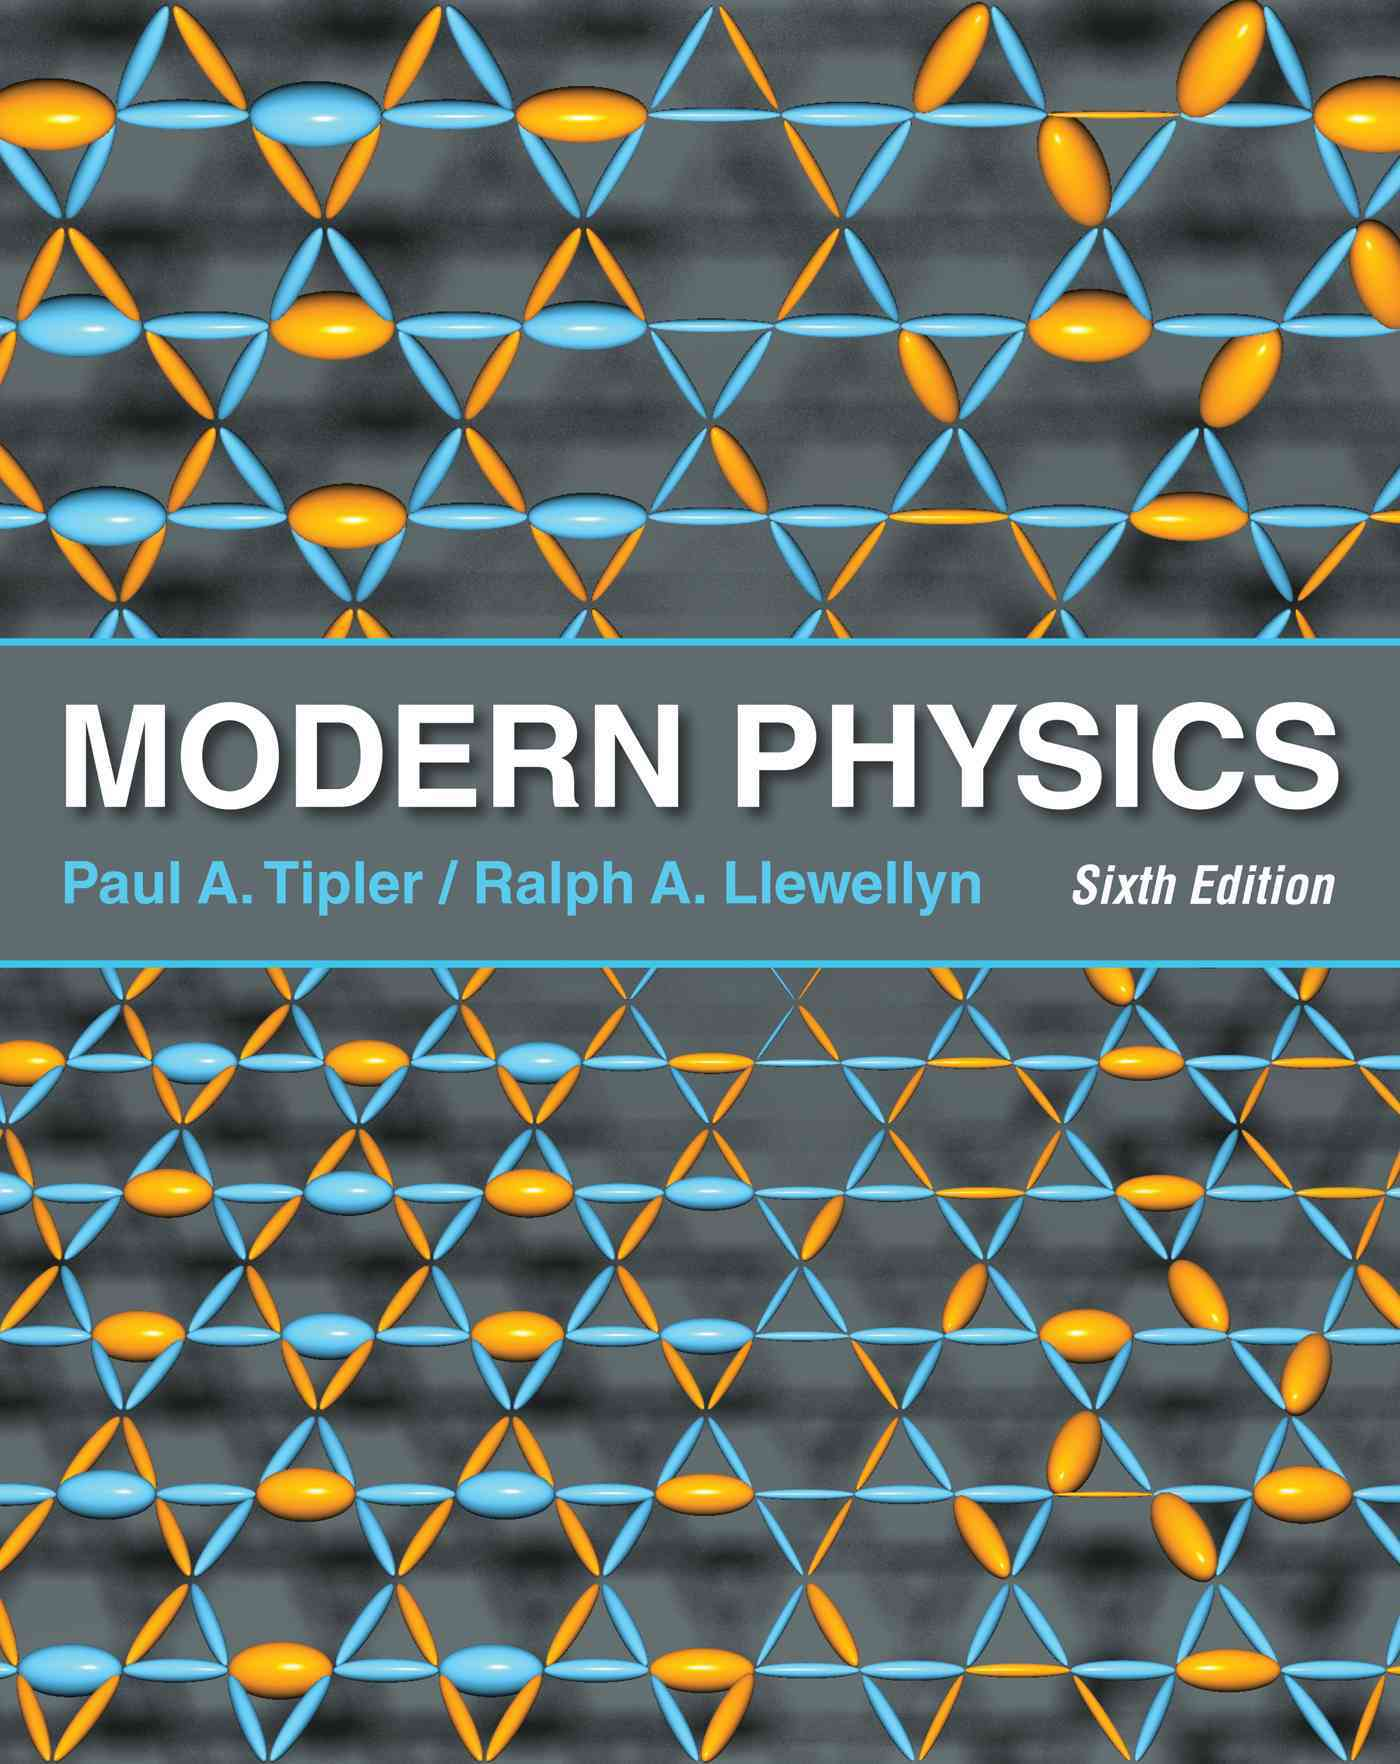 Modern Physics By Tipler, Paul A./ Llewellyn, Ralph